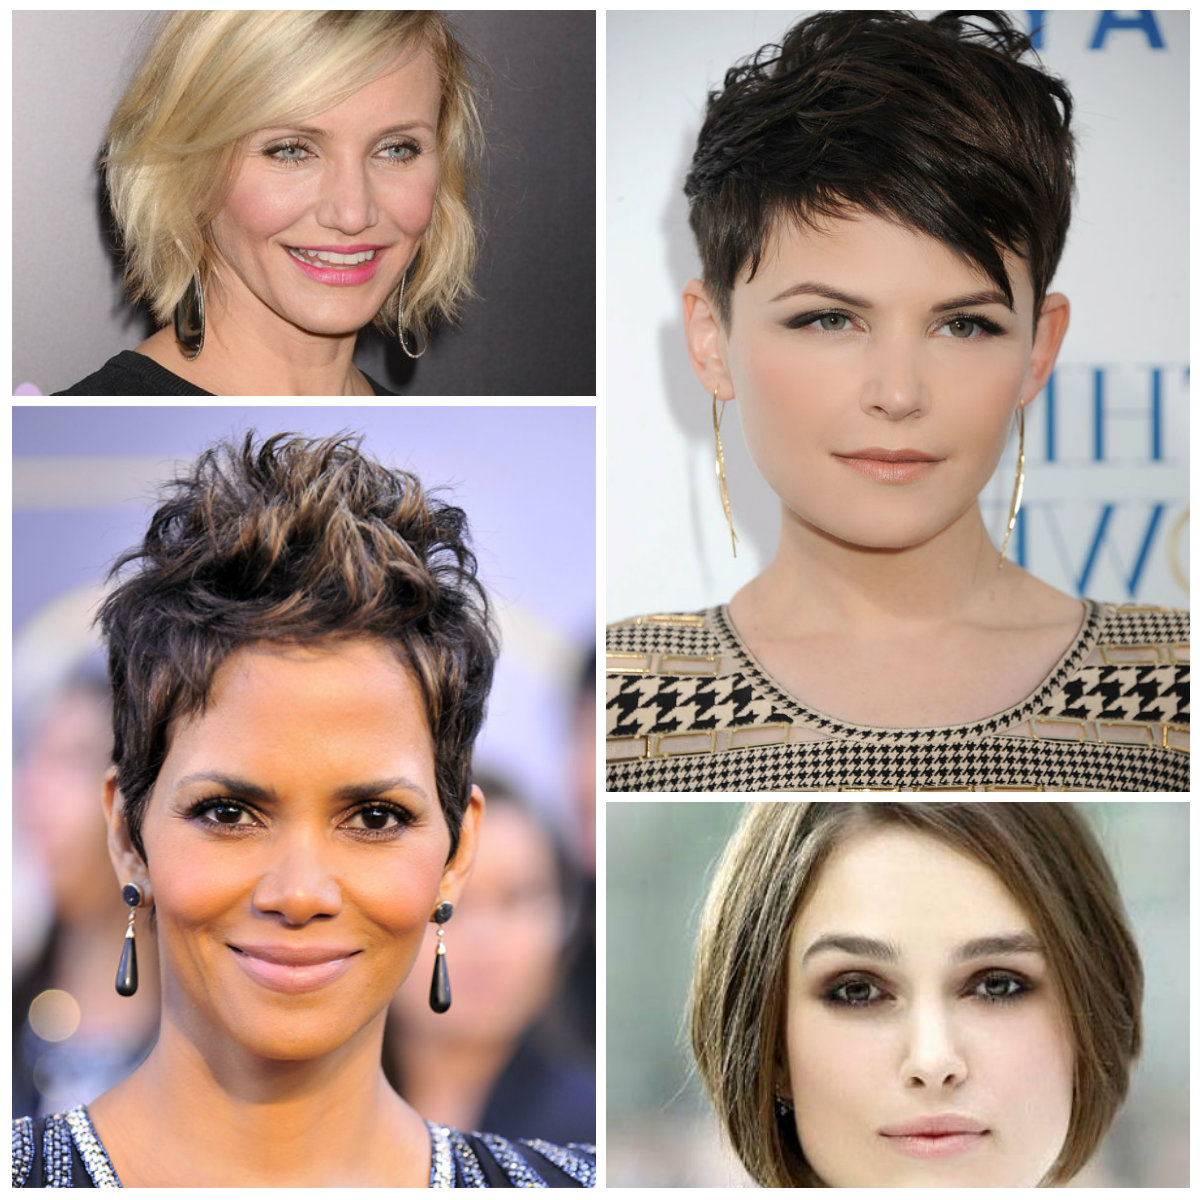 Short Hairstyles For Round Faces 2017 – Hairstyles Ideas With Short Haircuts For Different Face Shapes (View 15 of 25)